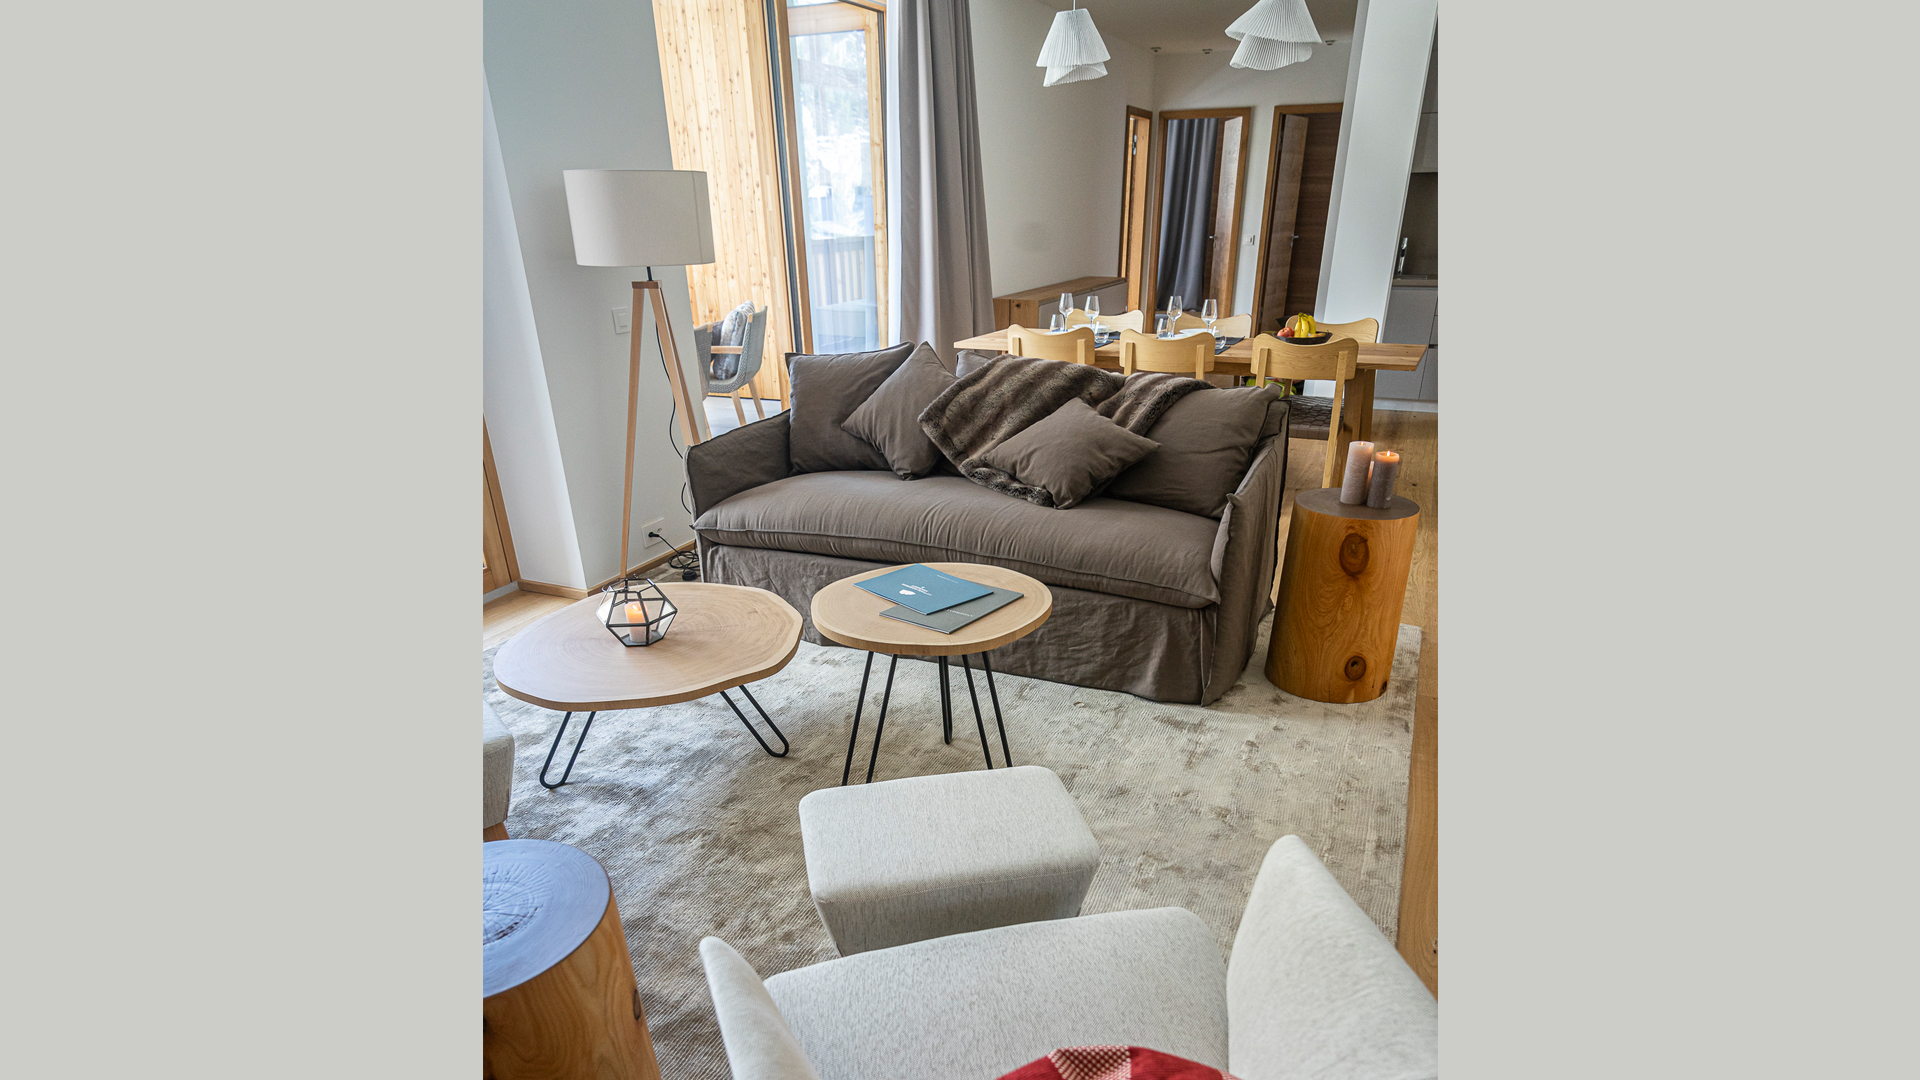 The Gotthard Lofts Apartments, Switzerland